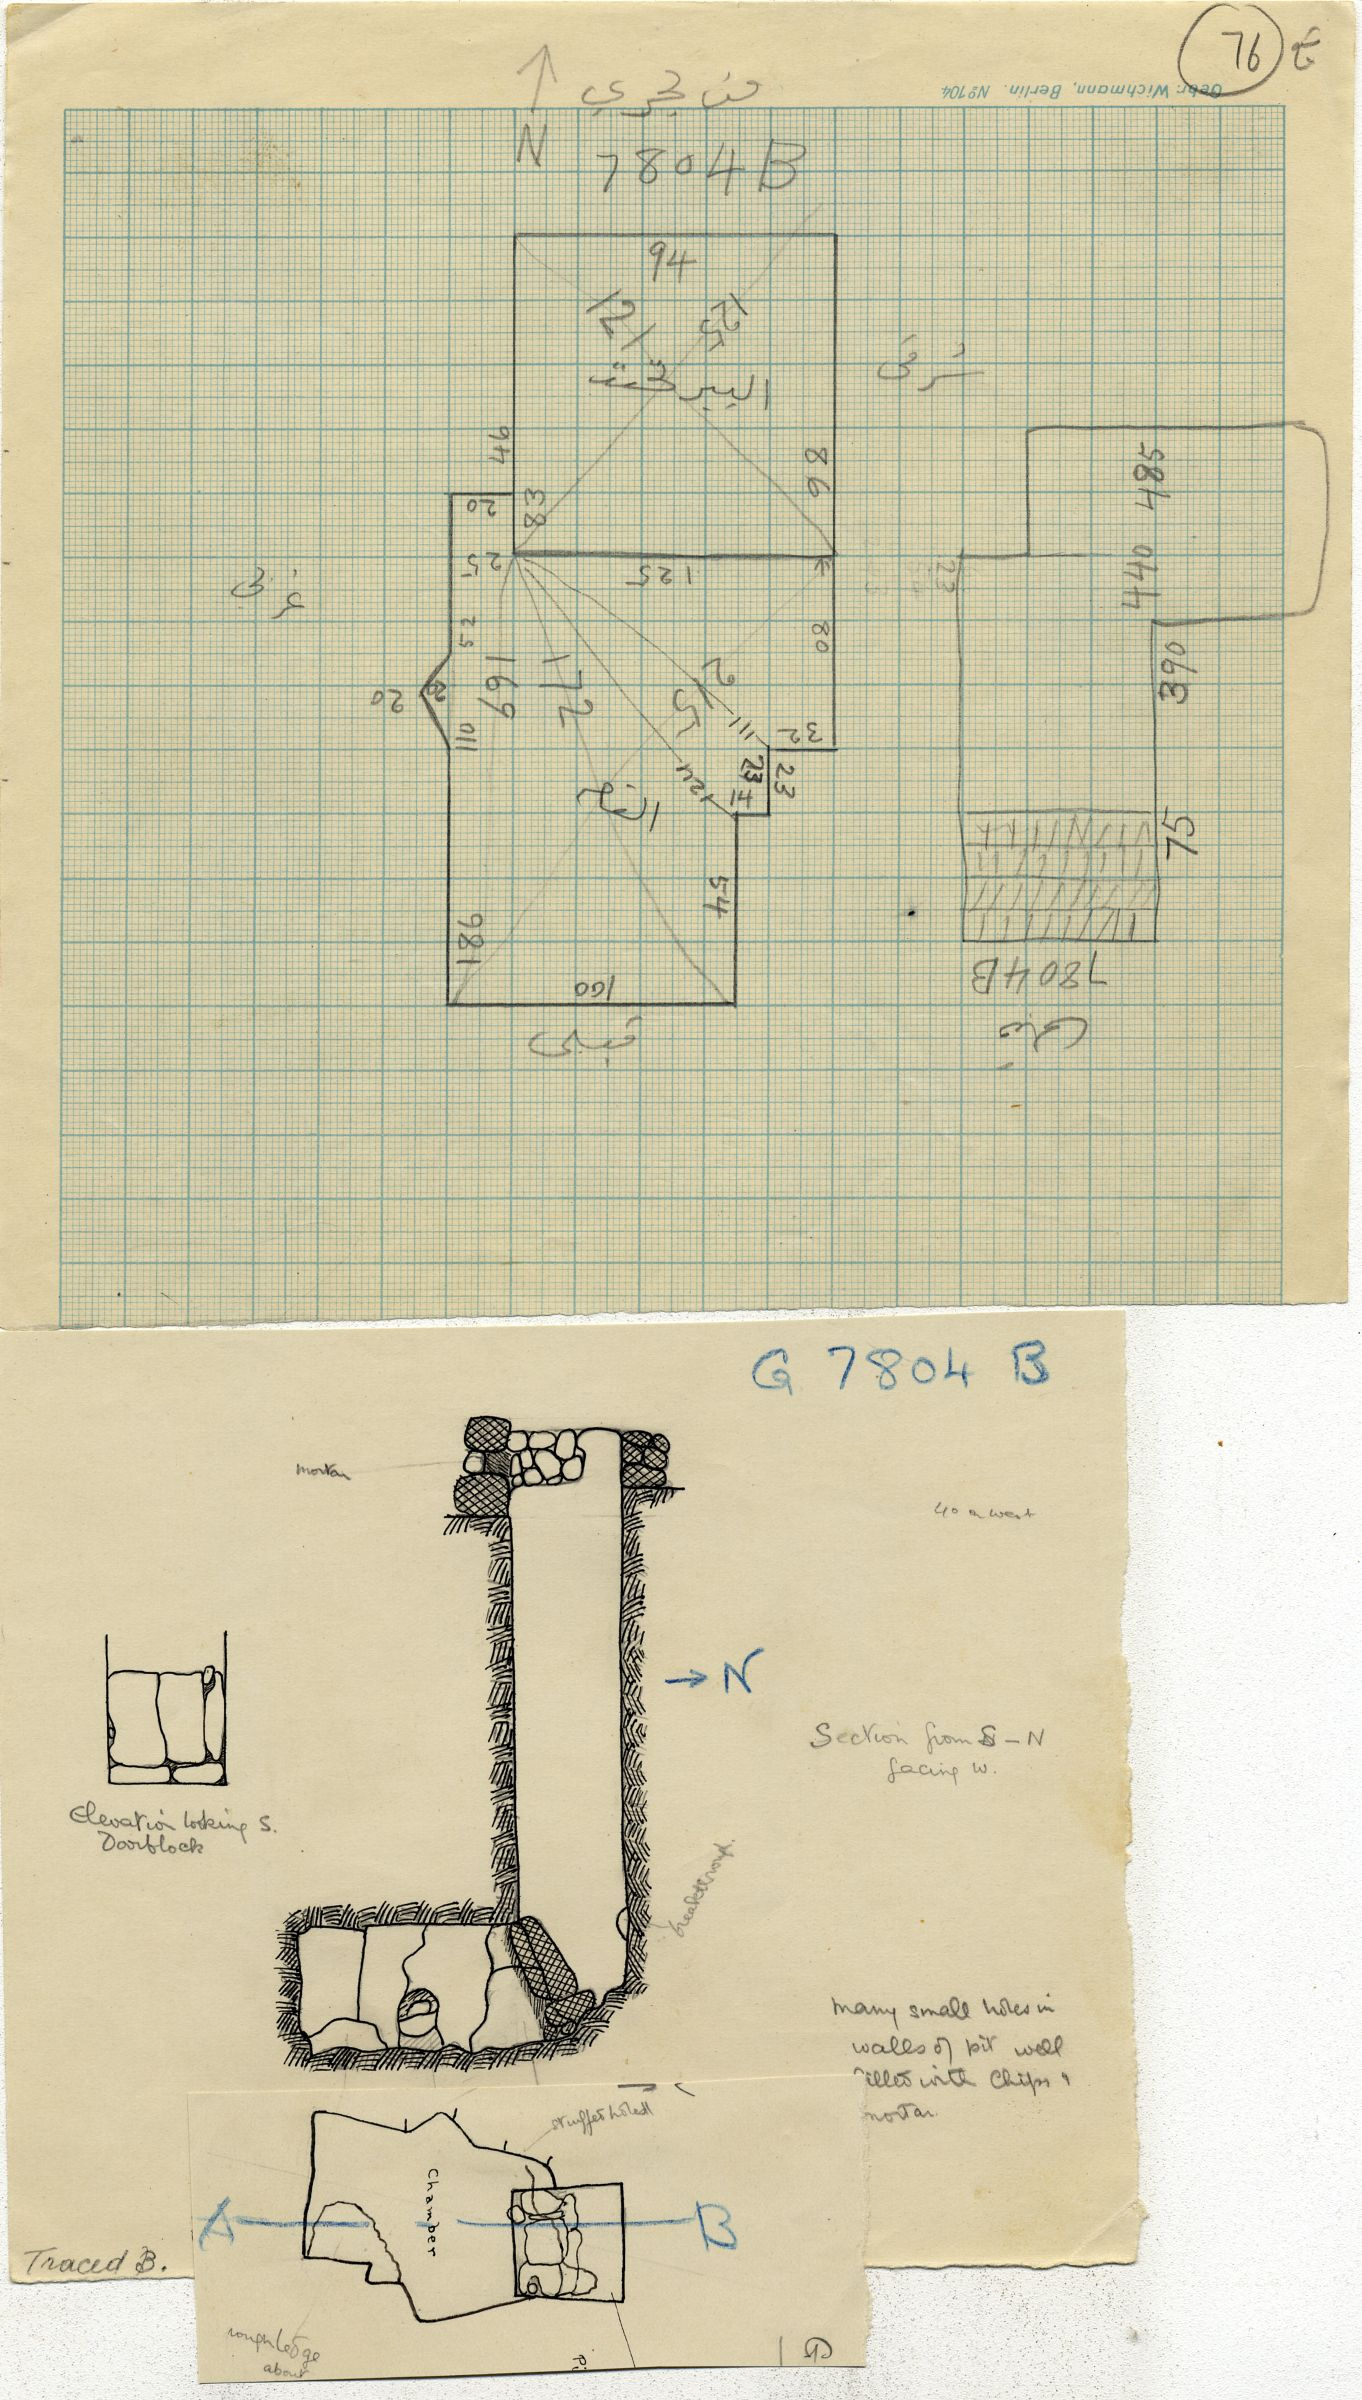 Maps and plans: G 7804, Shaft B